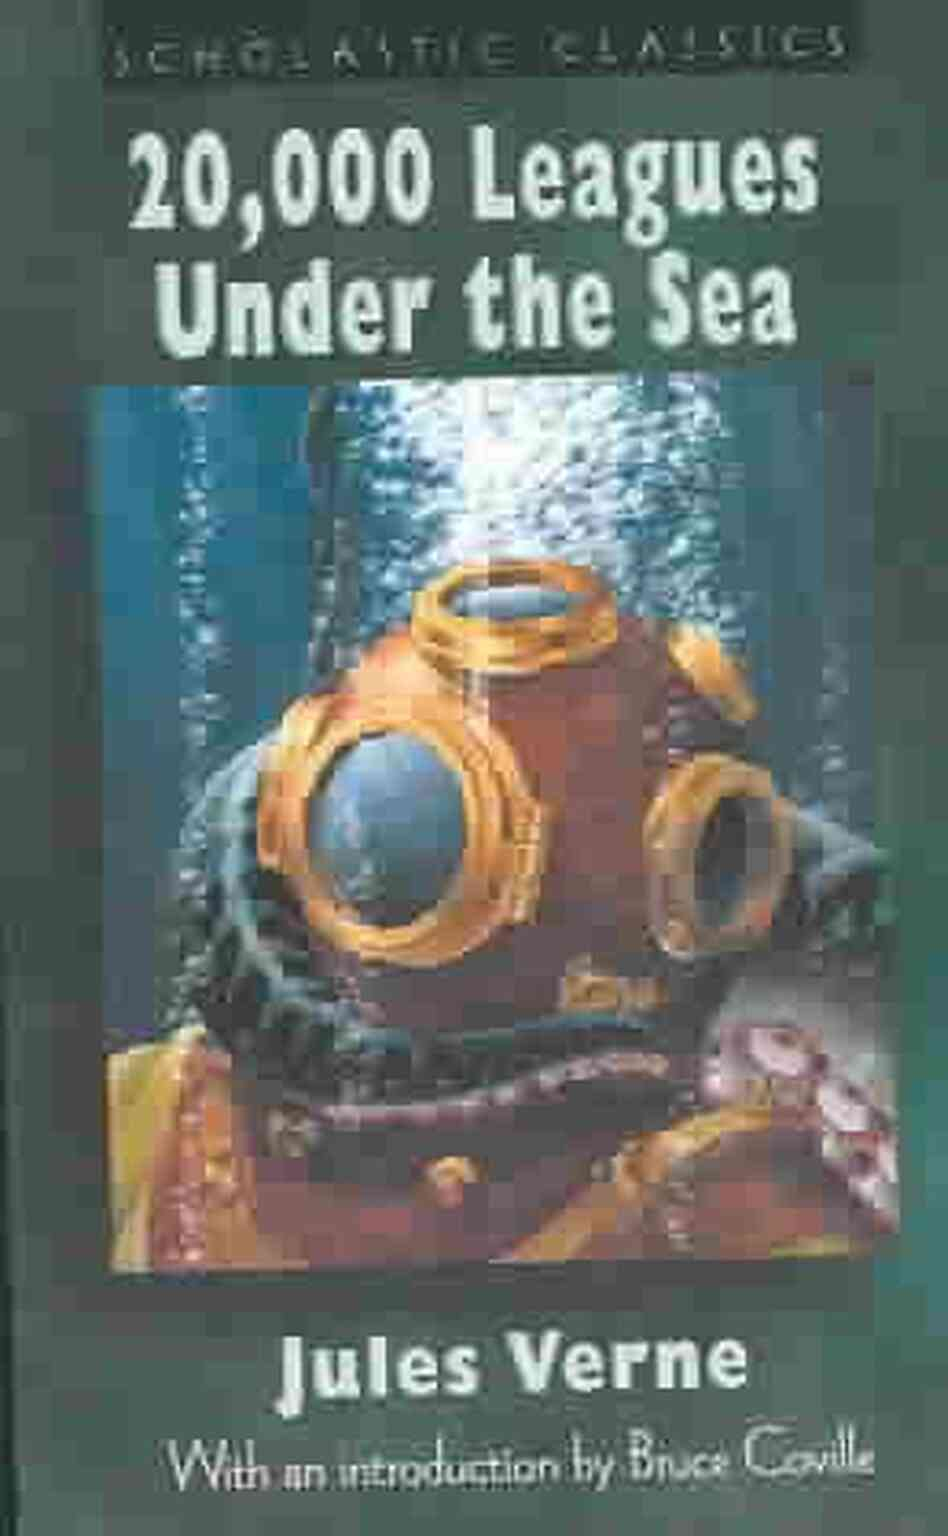 a review of jules vernes book 20000 leagues under the sea The film currently holds an 89% approval rating at the review aggregator website rotten tomatoes, with the consensus being: one of disney's finest live-action adventures, 20,000 leagues under the sea brings jules verne's classic sci-fi tale to vivid life, and features an awesome giant squid.